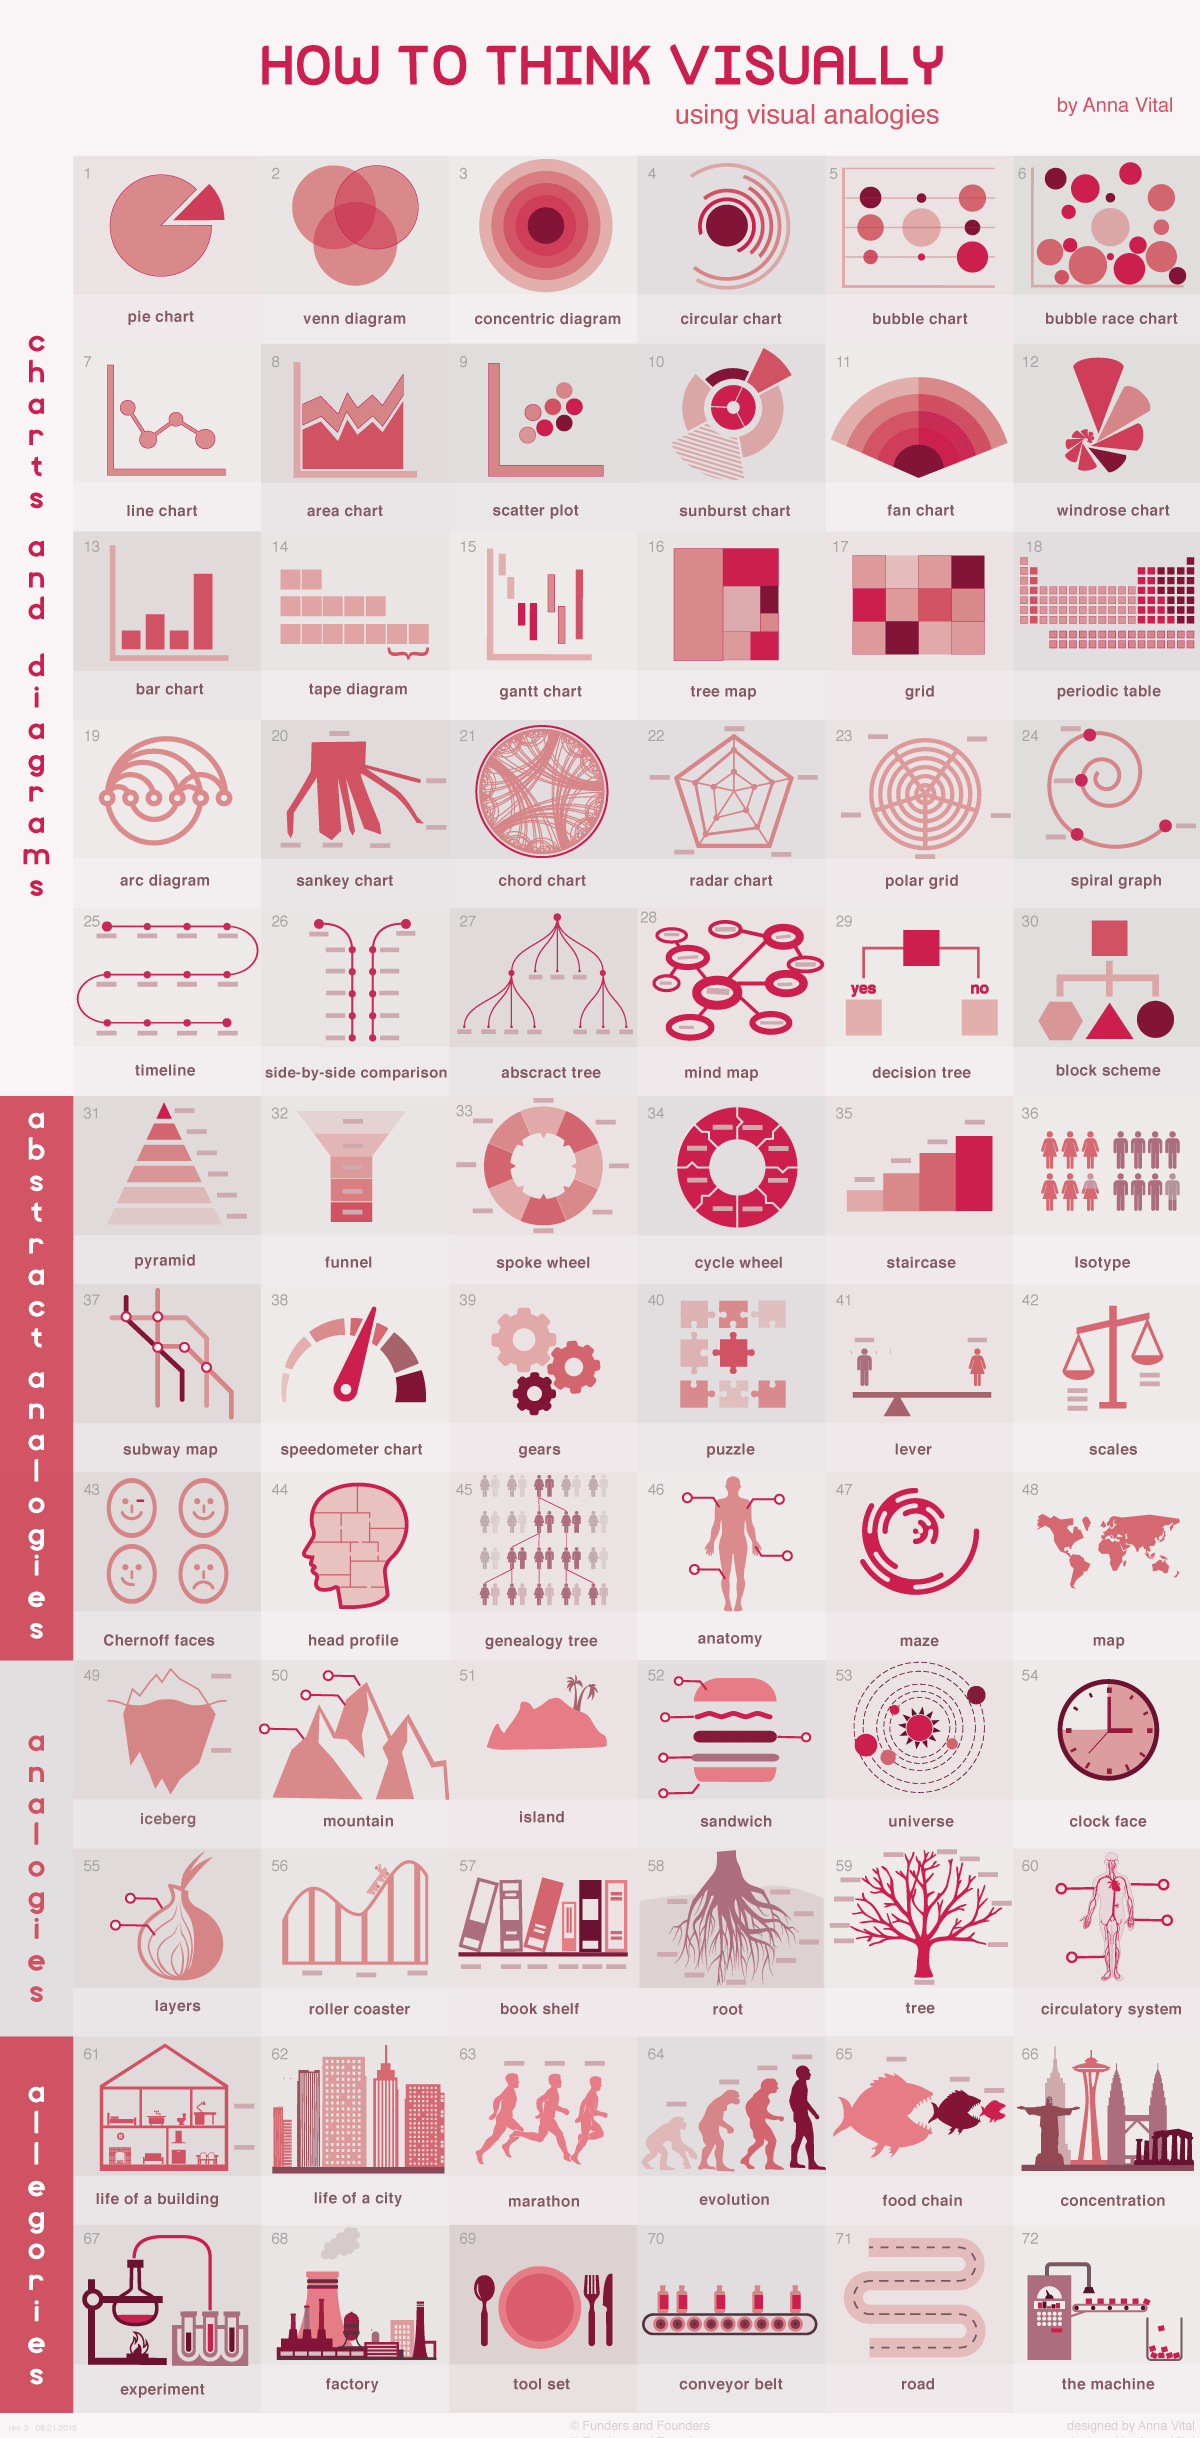 How to think visually using visual analogies - infographic by Anna Vital